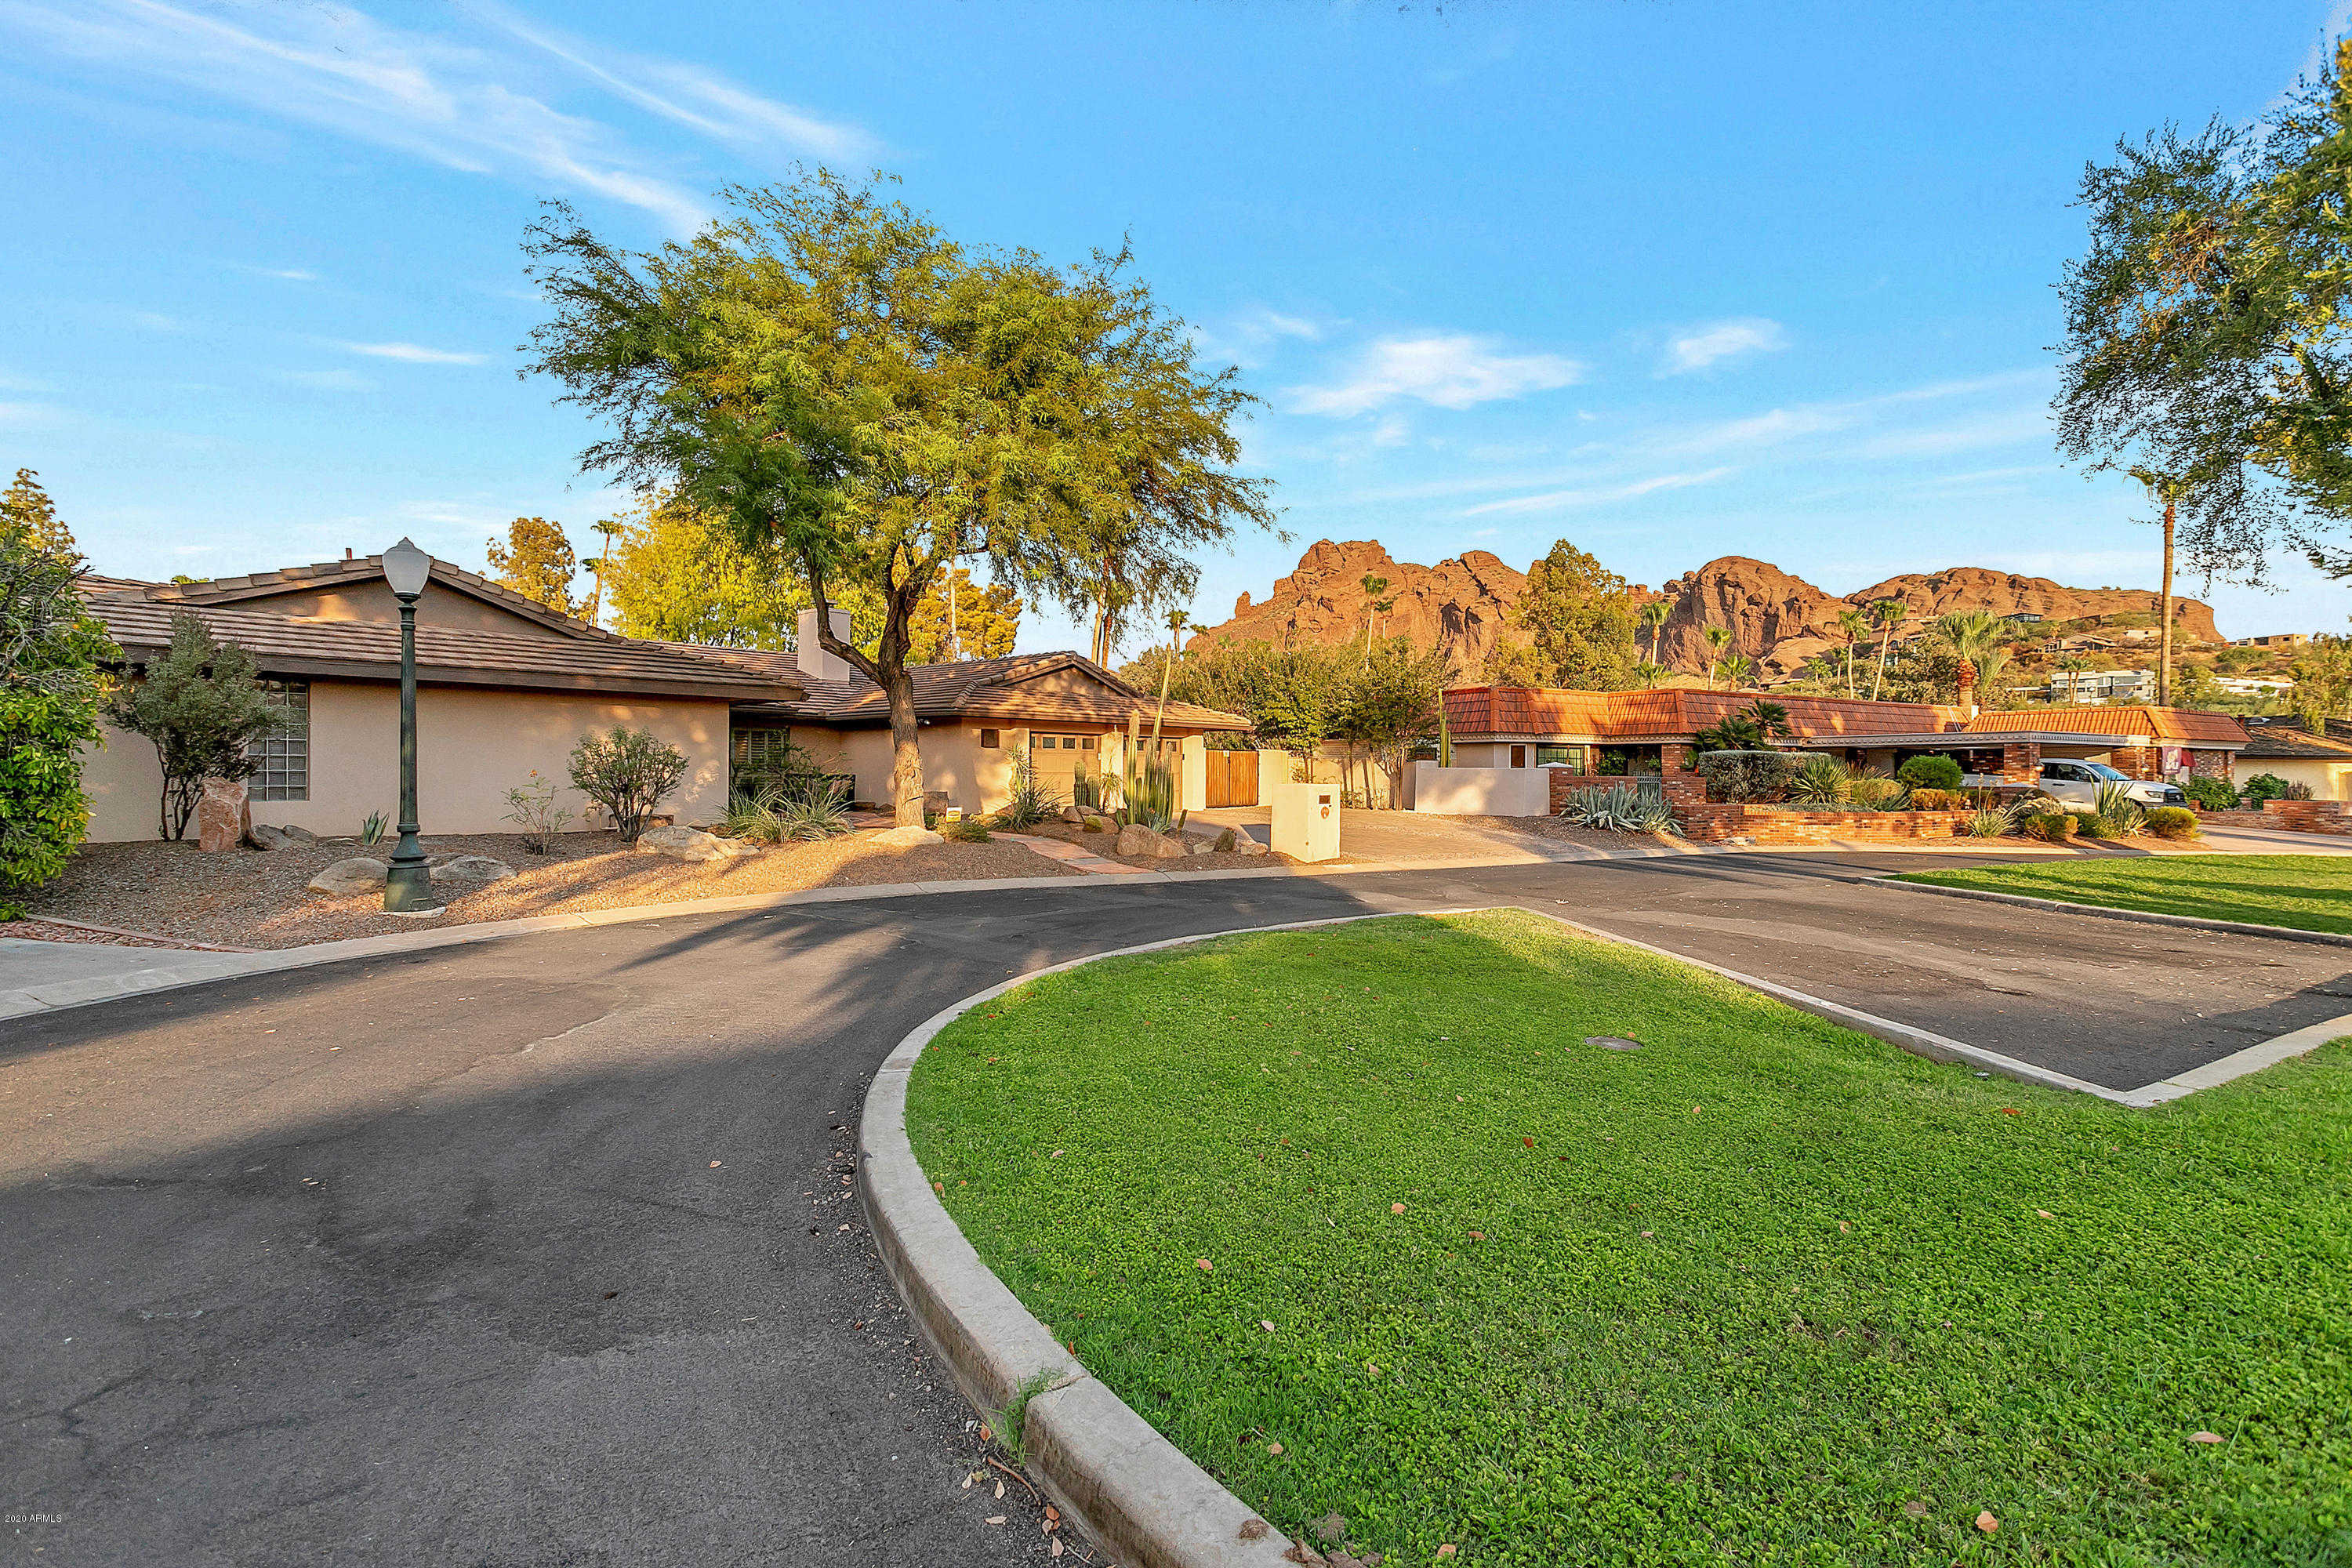 $1,195,000 - 4Br/3Ba - Home for Sale in Heritage Hills Unit 1, Phoenix